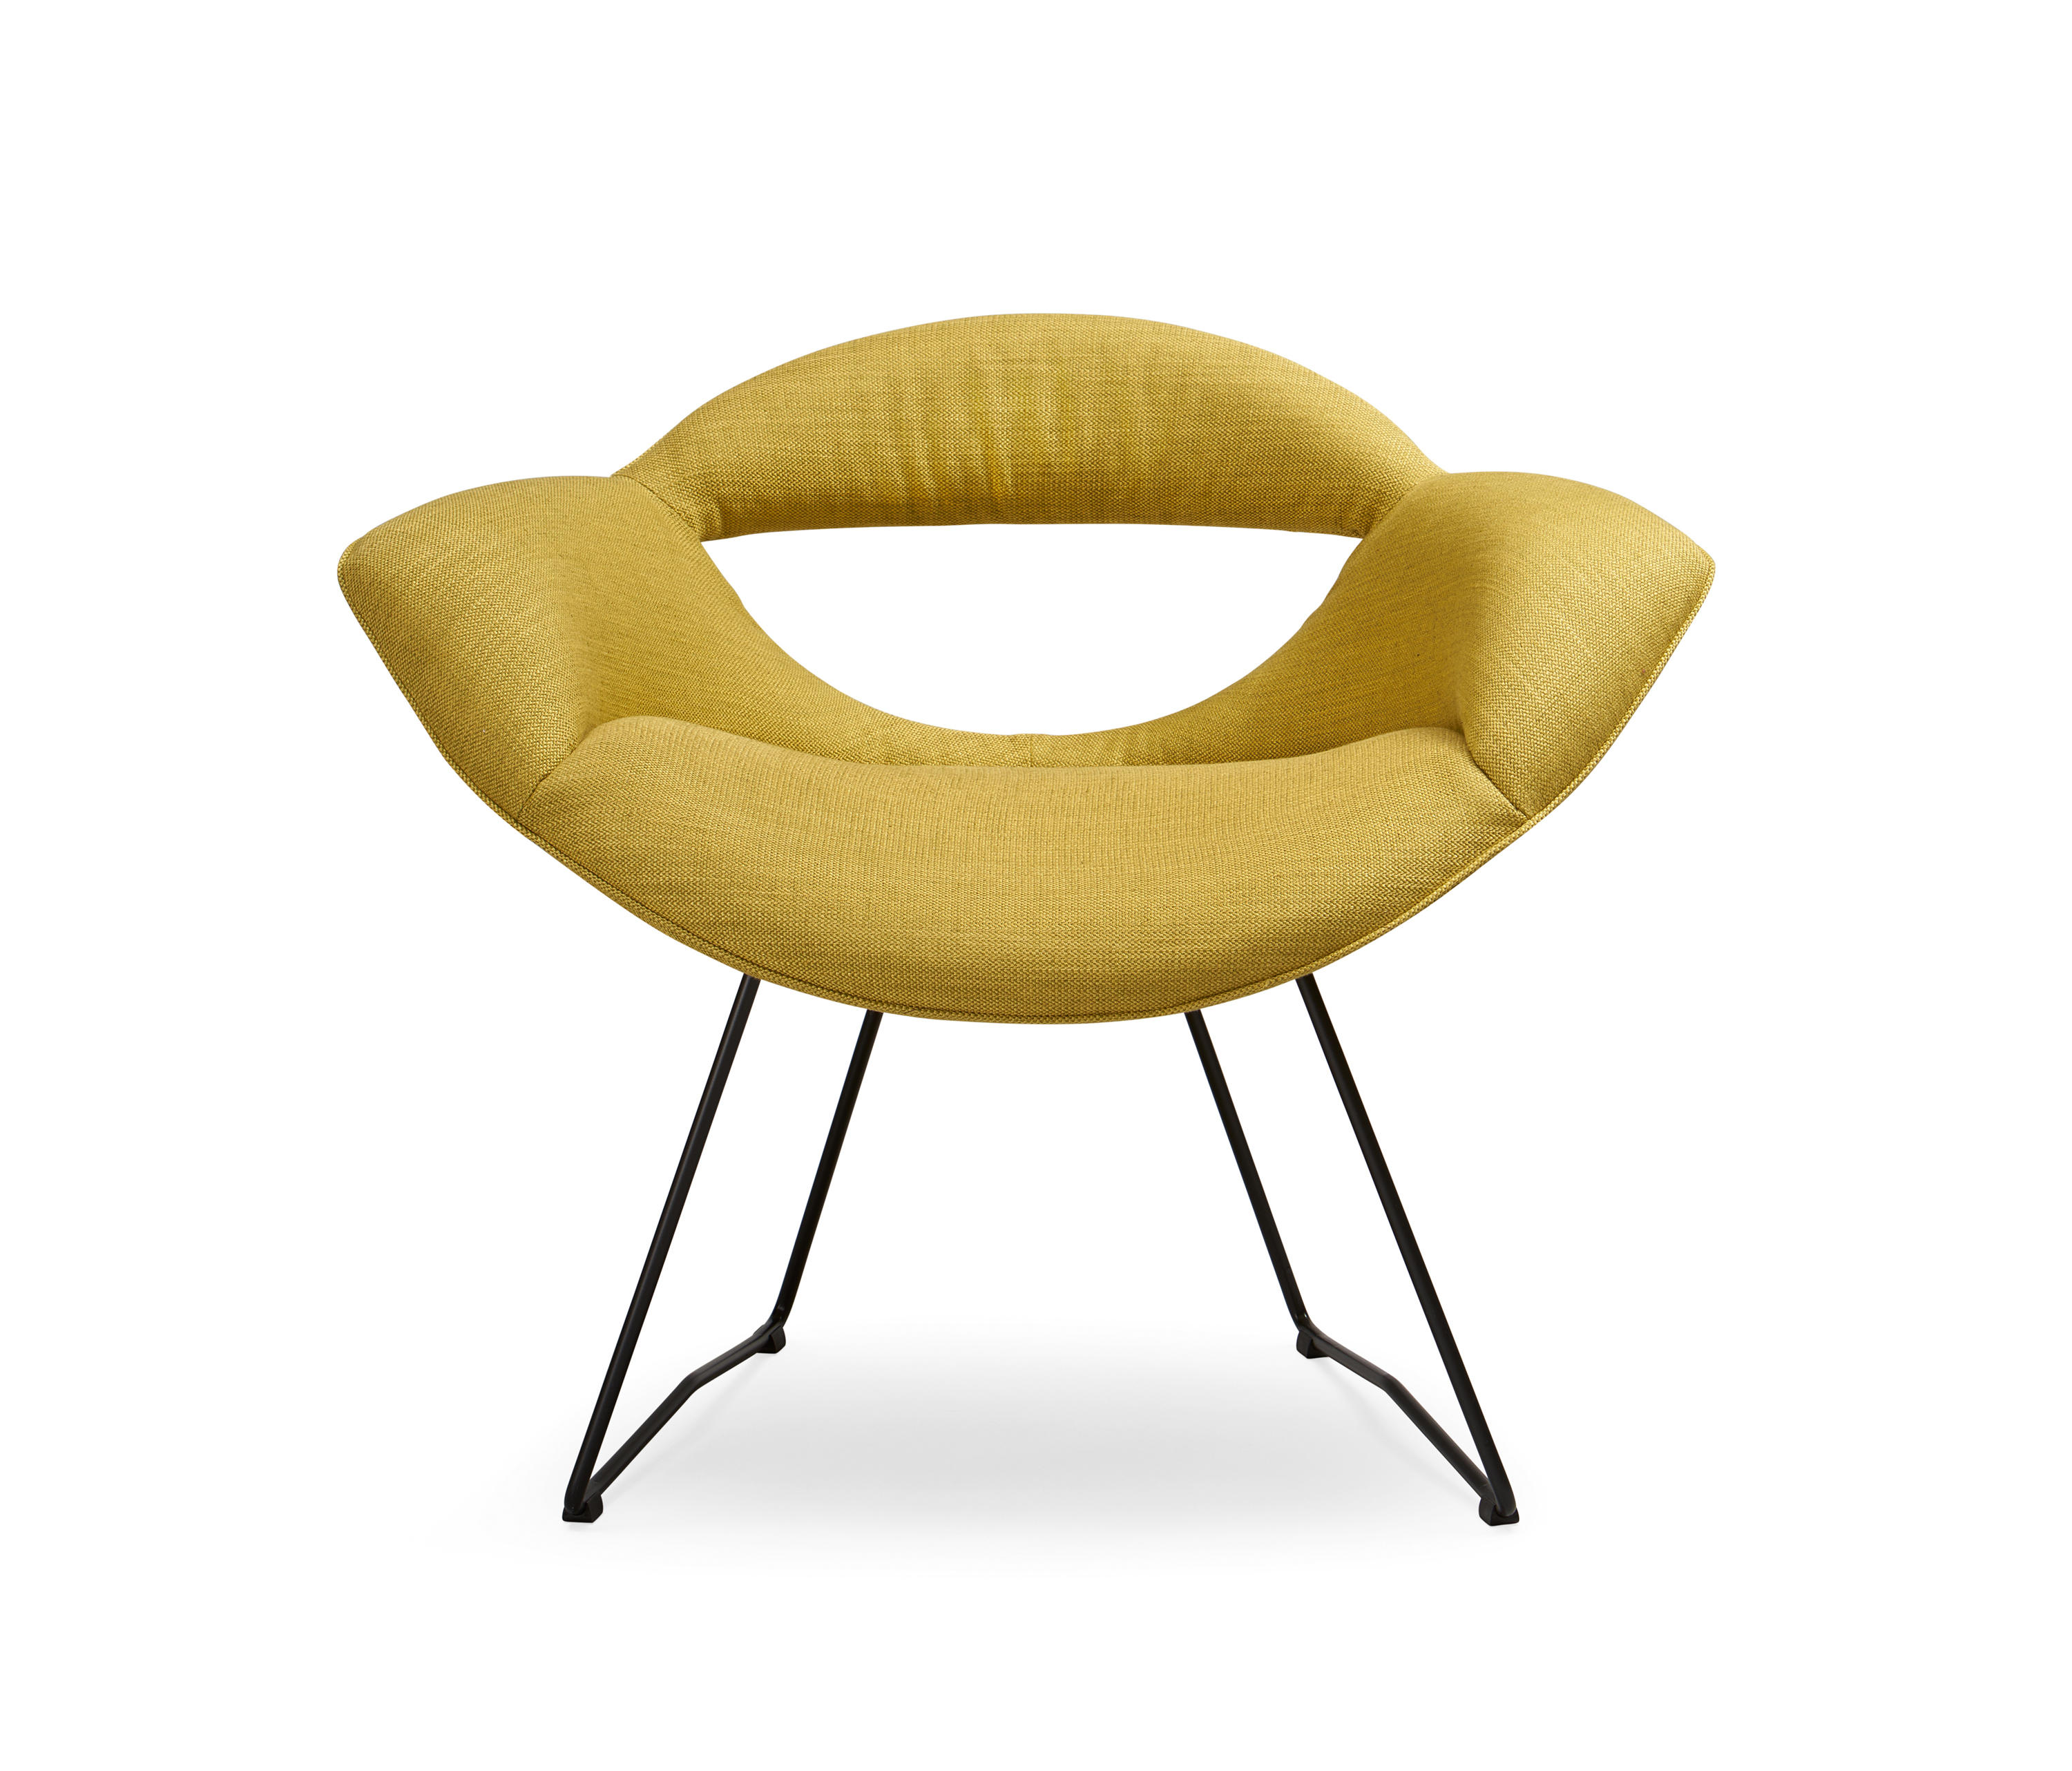 RUMI CHAIR - Chairs from Walter Knoll   Architonic